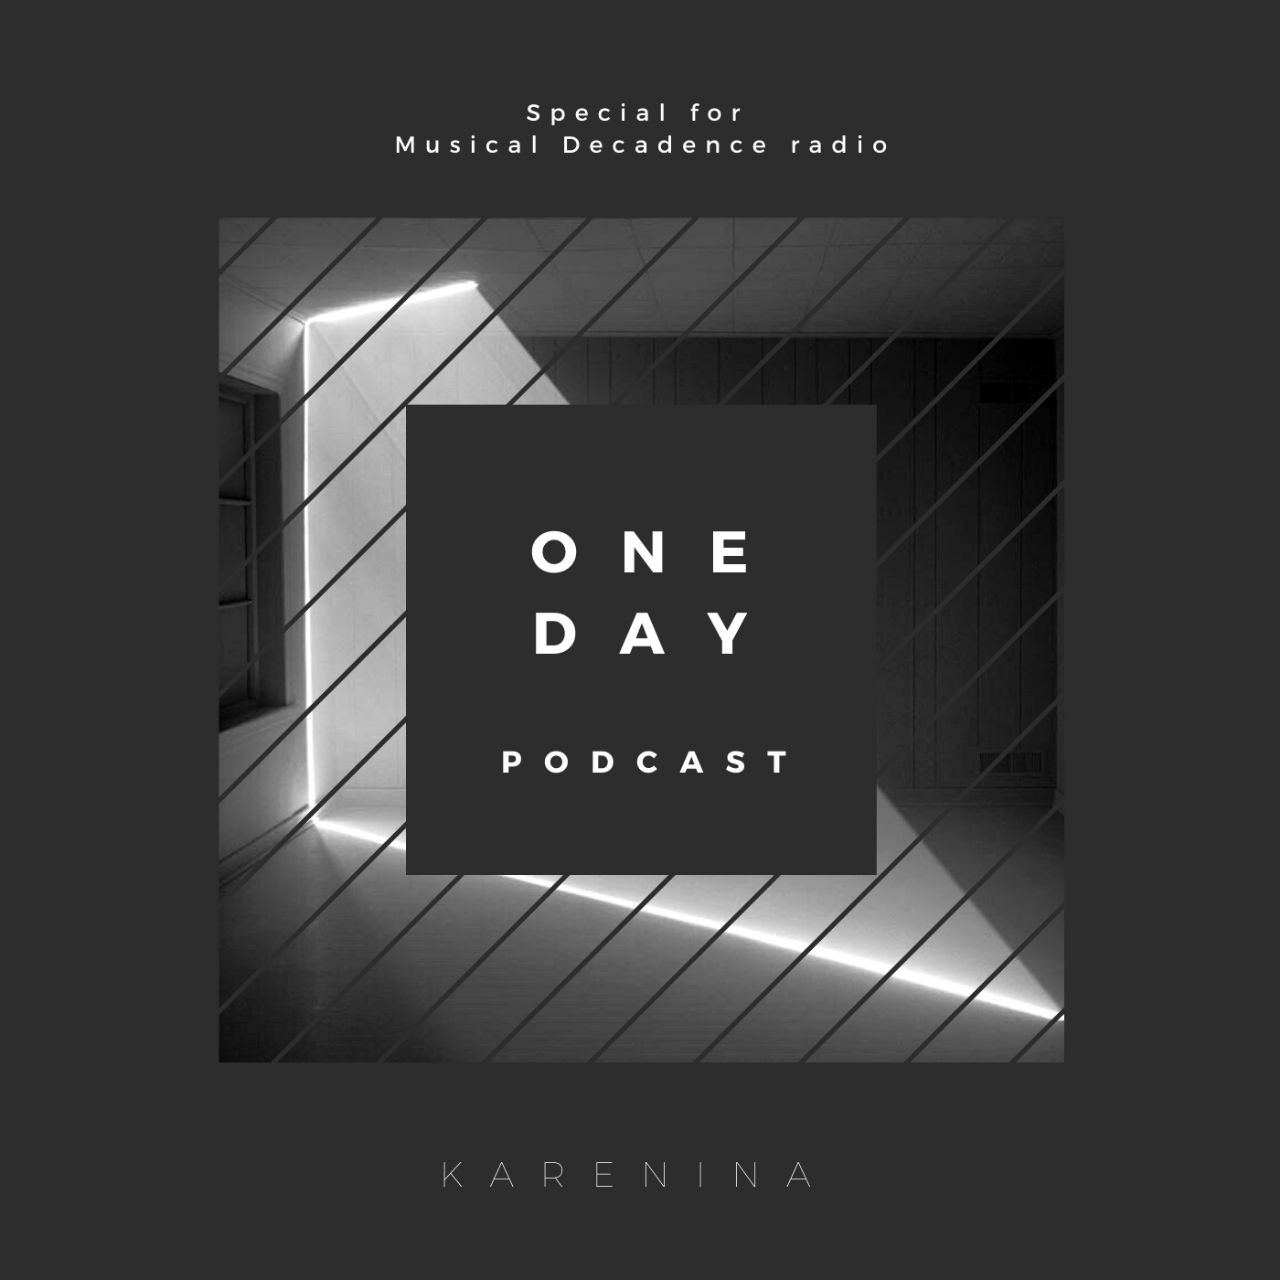 One Day Podcast by KARENINA